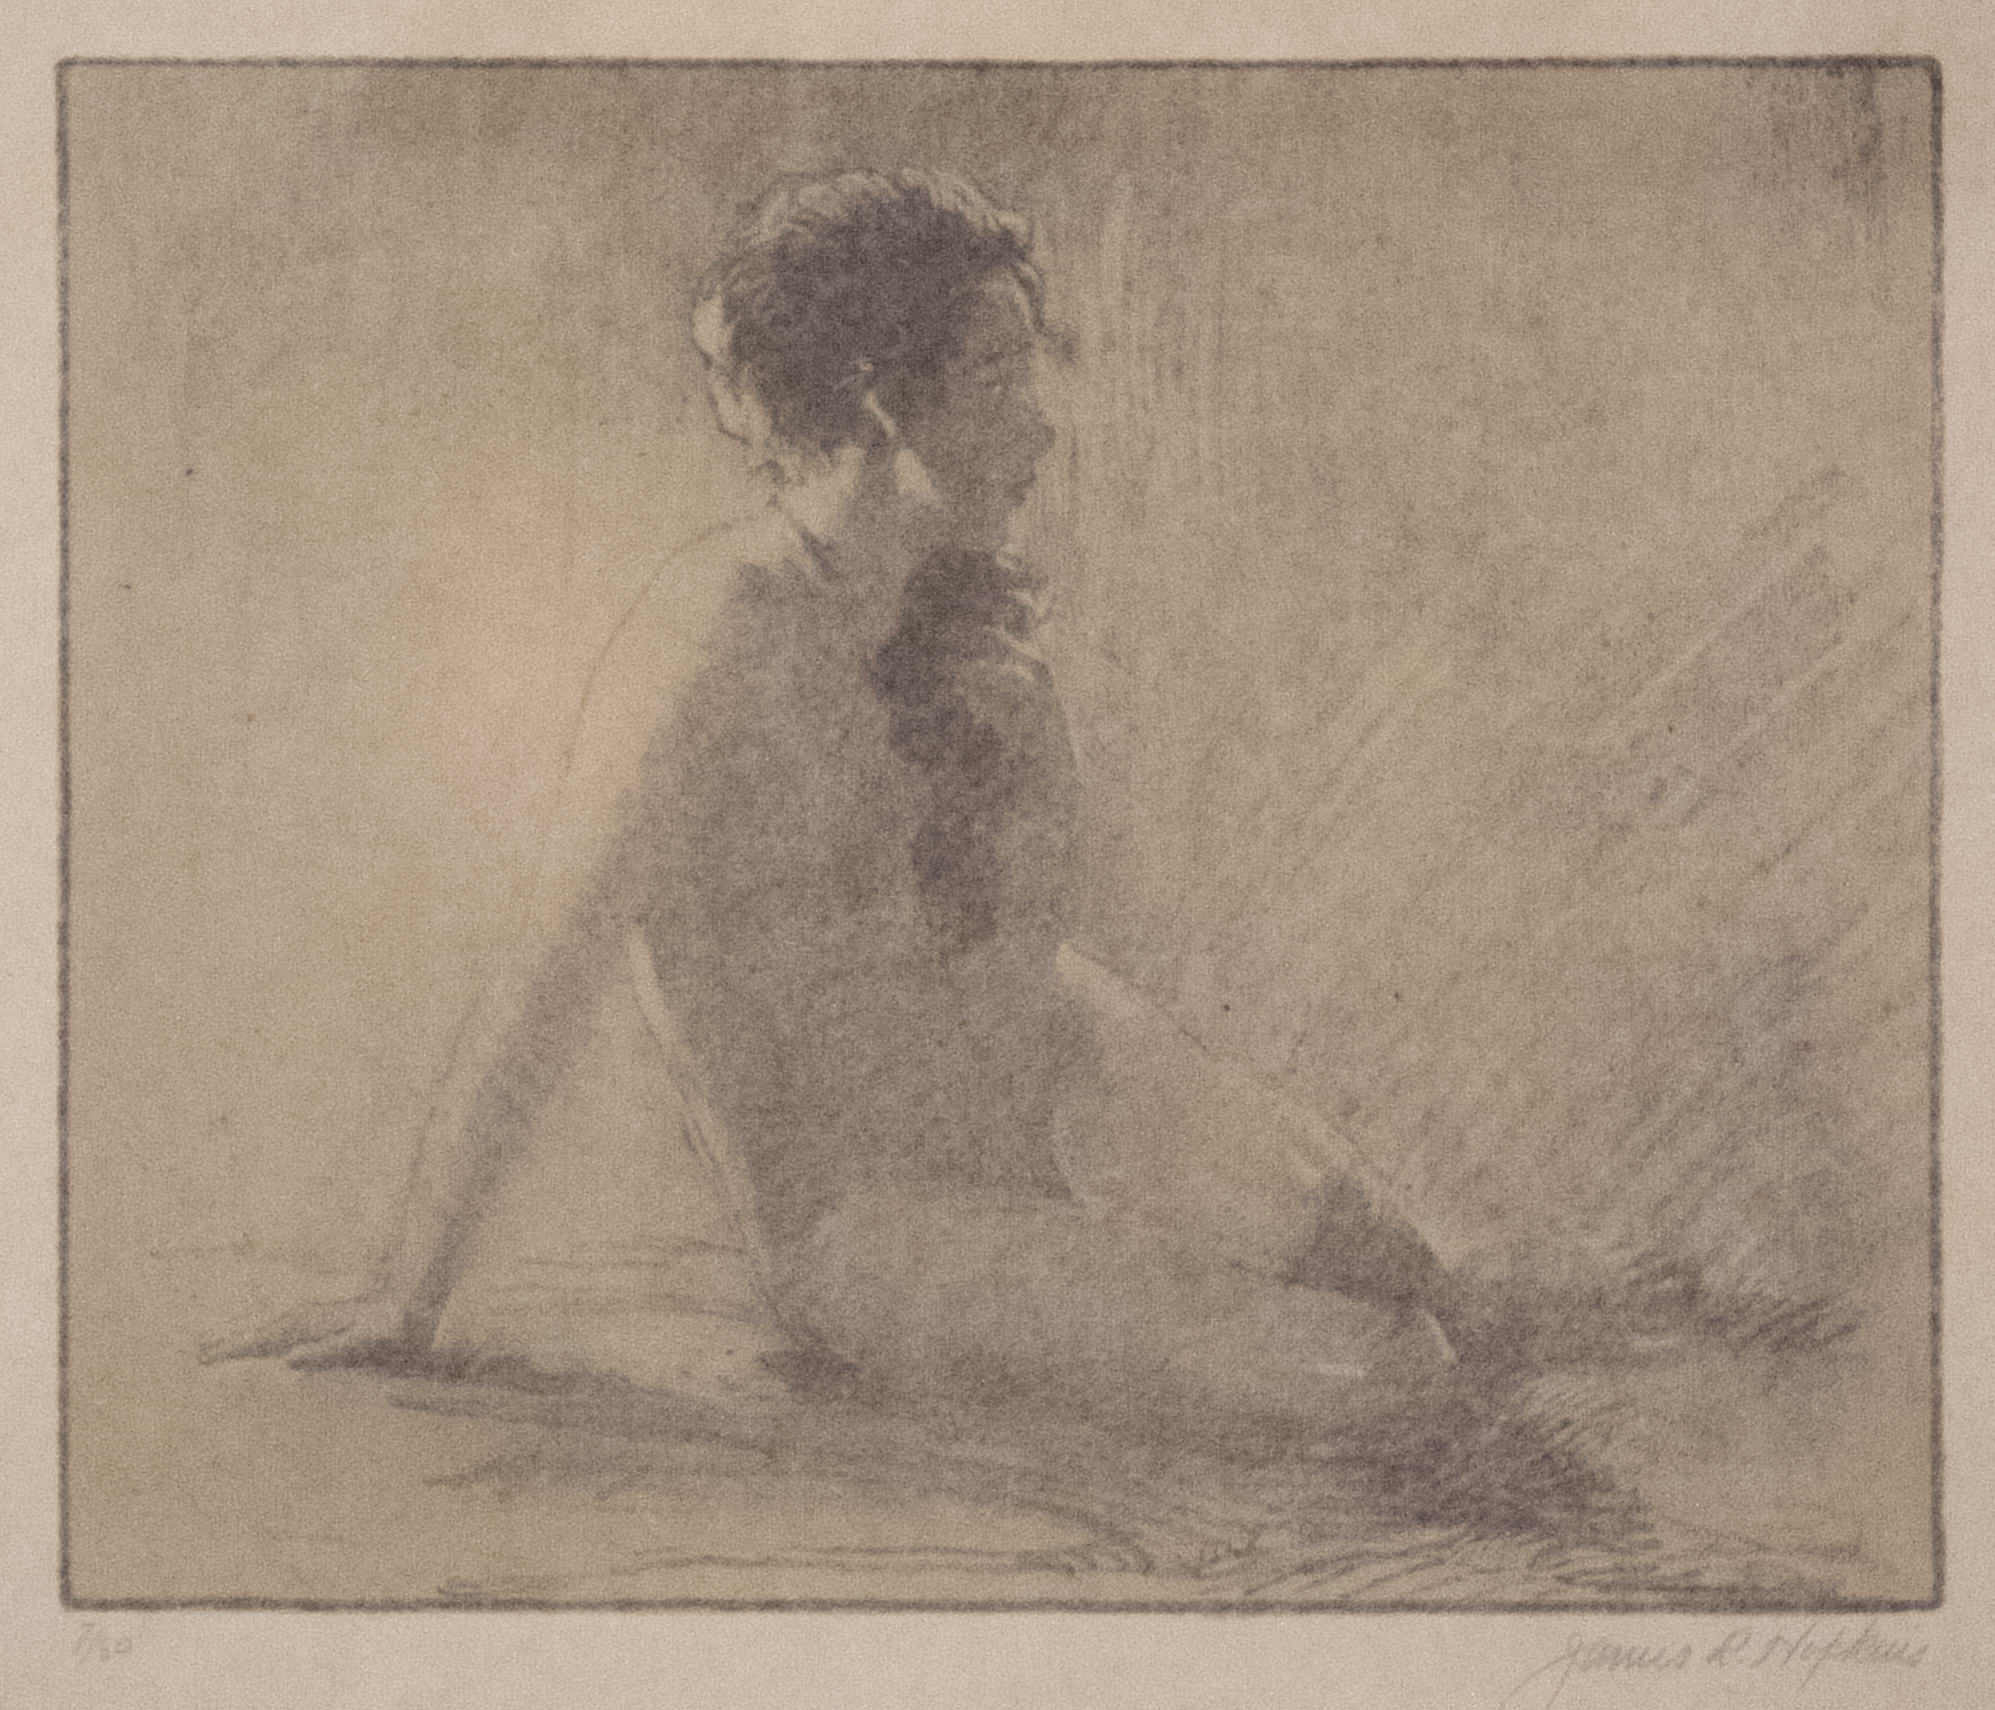 James R. Hopkins | SHADOWS (NUDE FACING RIGHT WITH CASCADING HAIR) | lithograph | 7 x 8-1/2"